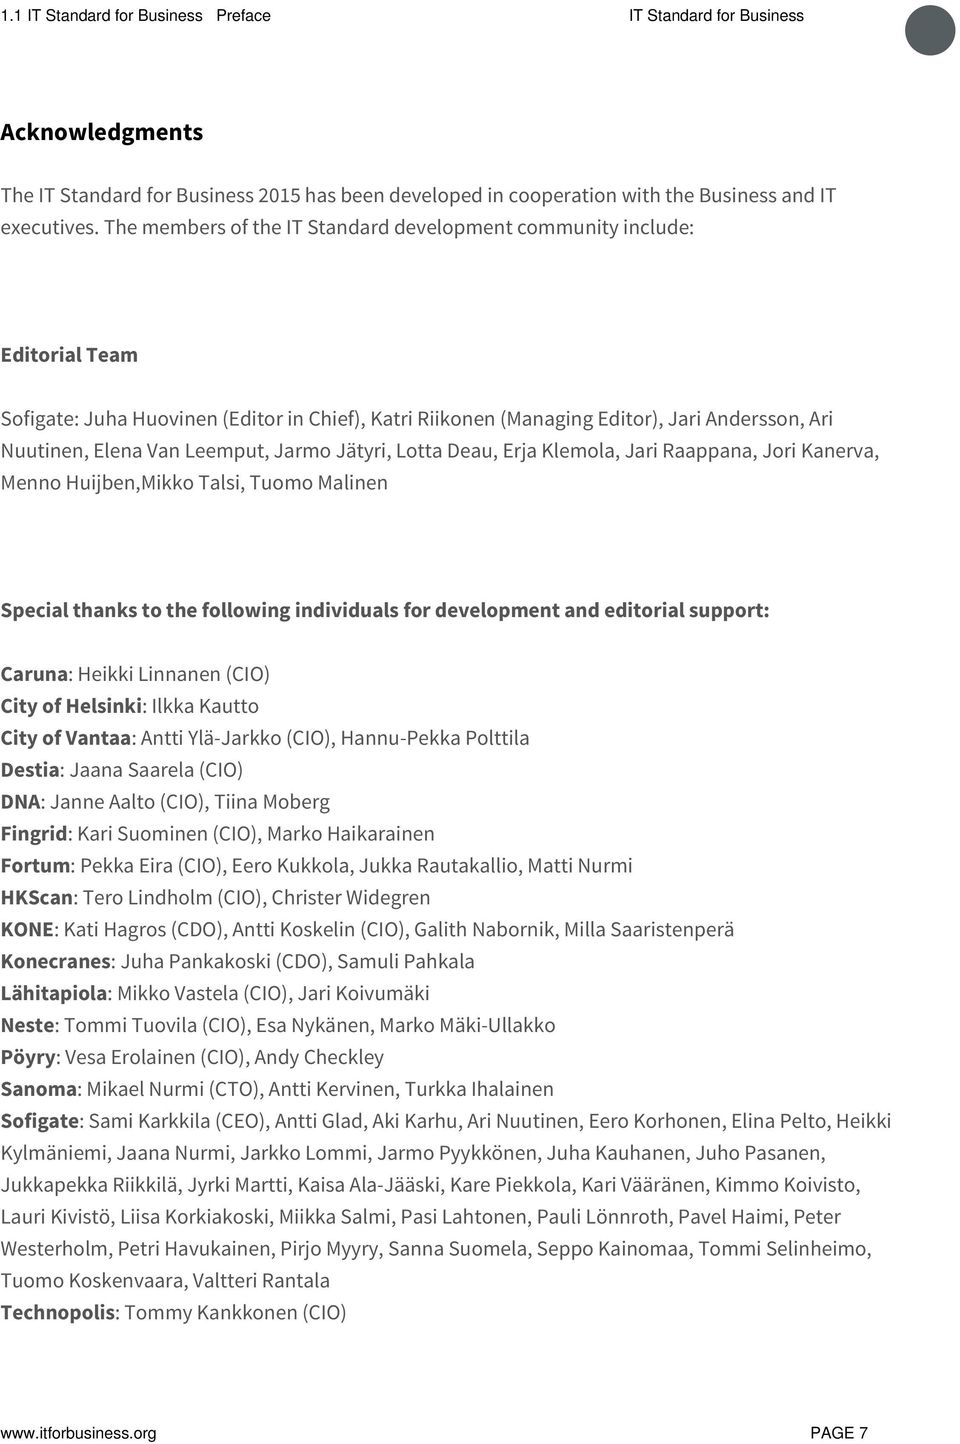 Leemput, Jarmo Jätyri, Lotta Deau, Erja Klemola, Jari Raappana, Jori Kanerva, Menno Huijben,Mikko Talsi, Tuomo Malinen Special thanks to the following individuals for development and editorial